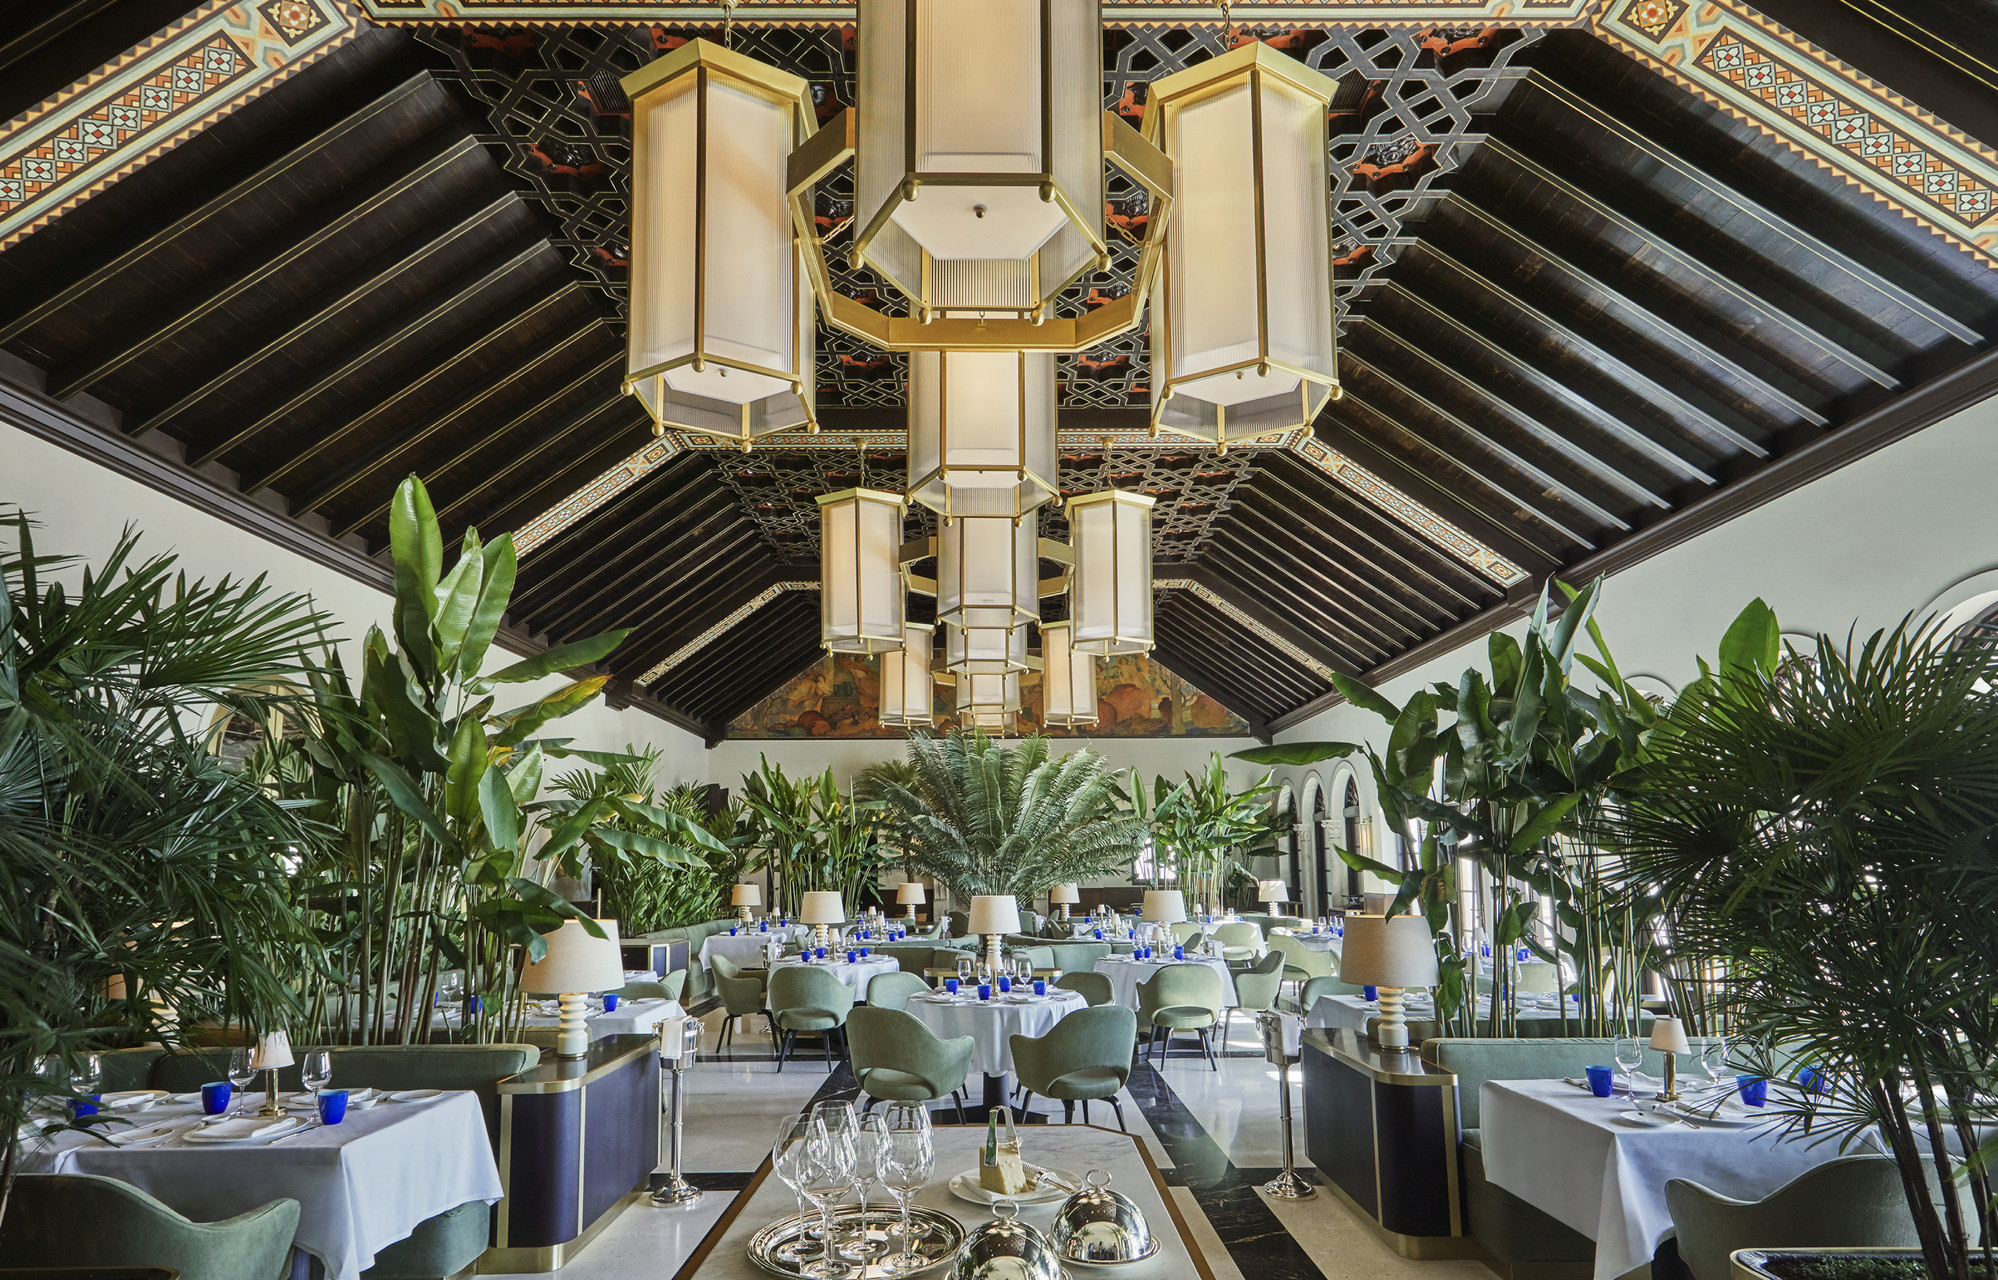 a resto in the resort - not the thomas keller one